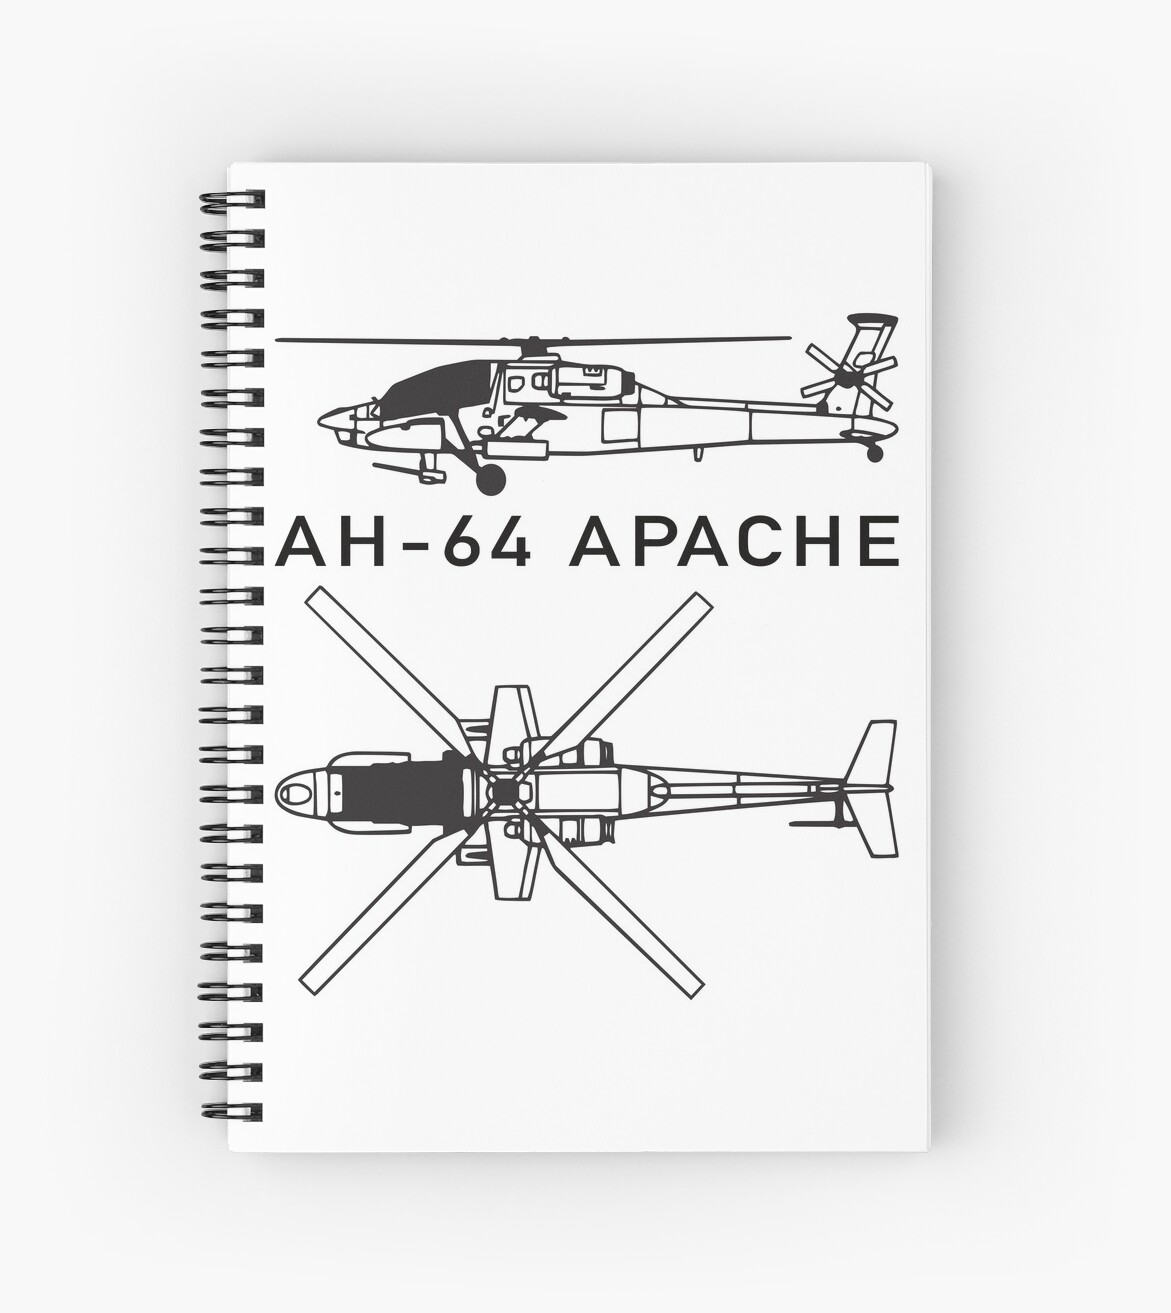 hight resolution of ah 64 apache attack helicopter spiral notebook